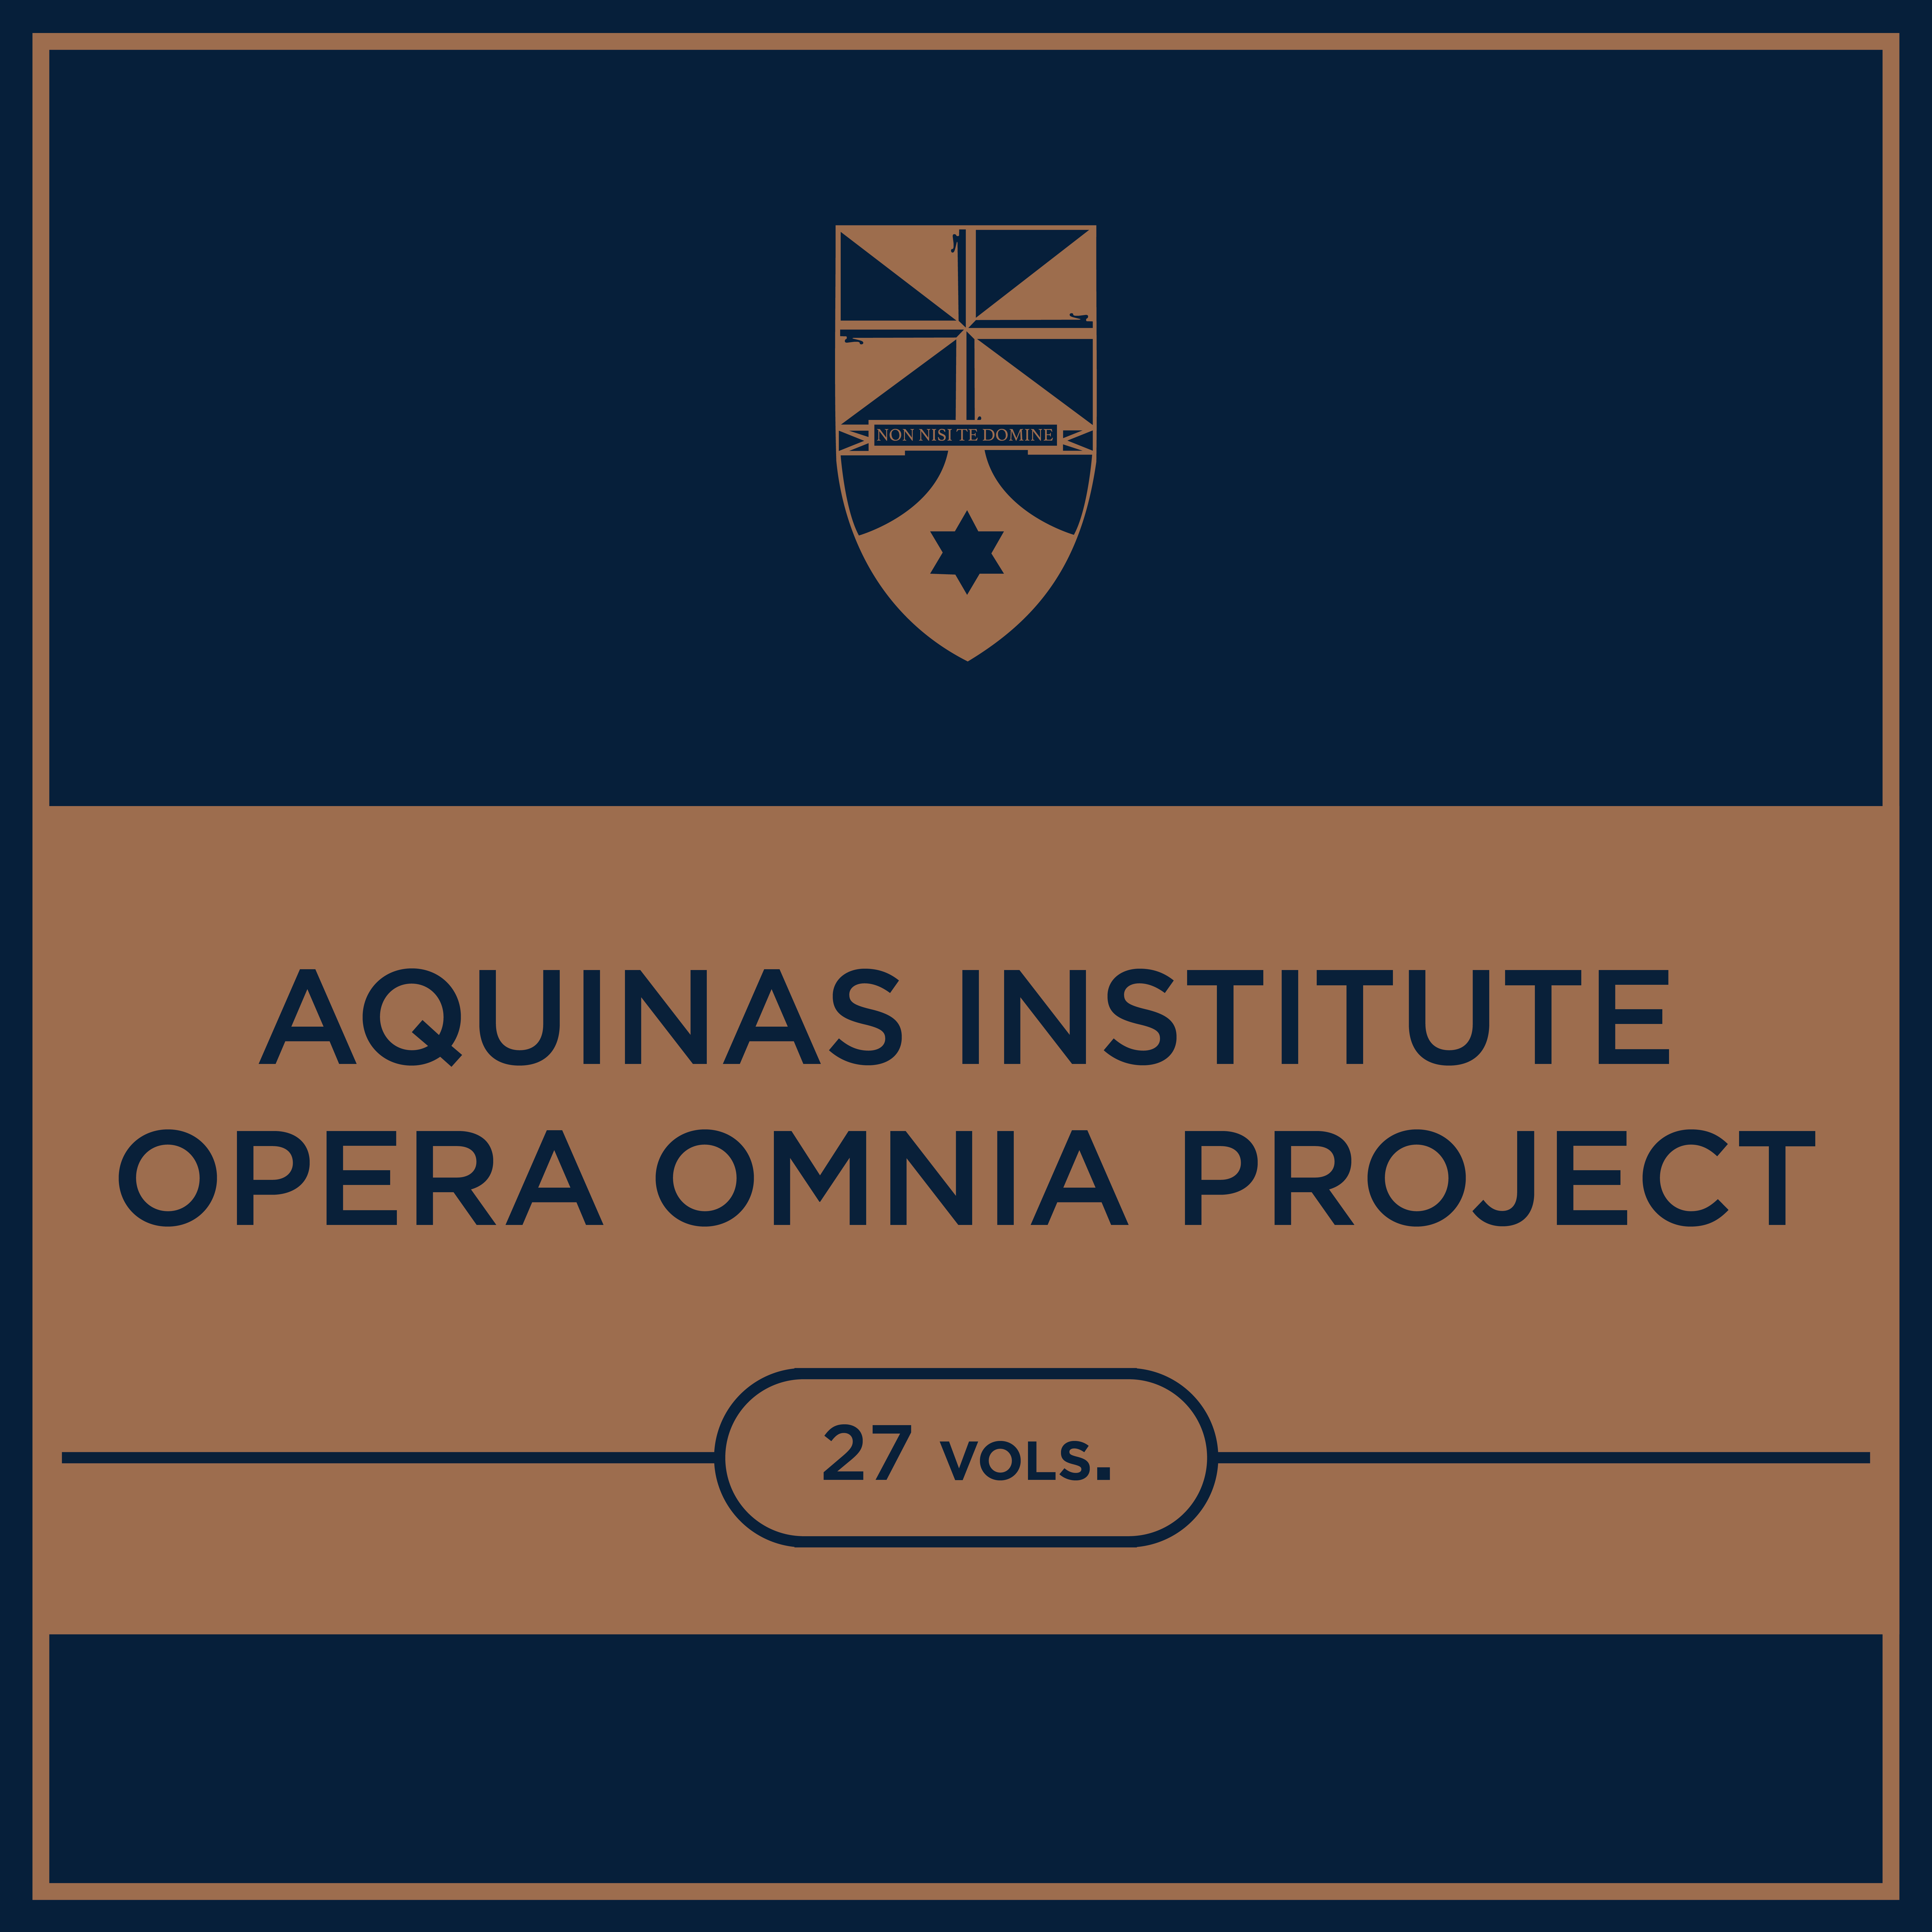 Aquinas Institute Opera Omnia Project (27 vols.)